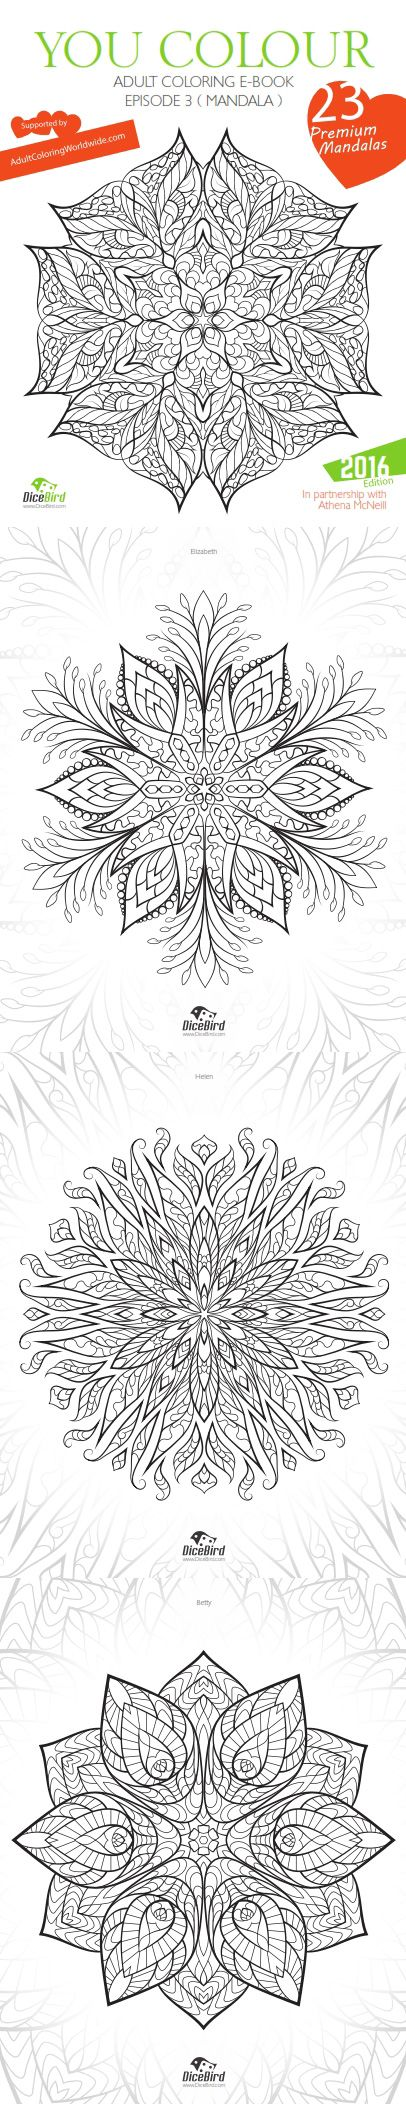 The coloring book e book - You Colour Adult Coloring E Book 23 Design Flowers Mandalas Adult Coloring Pages And Sheets Calm Stress Relief Mental Therapy